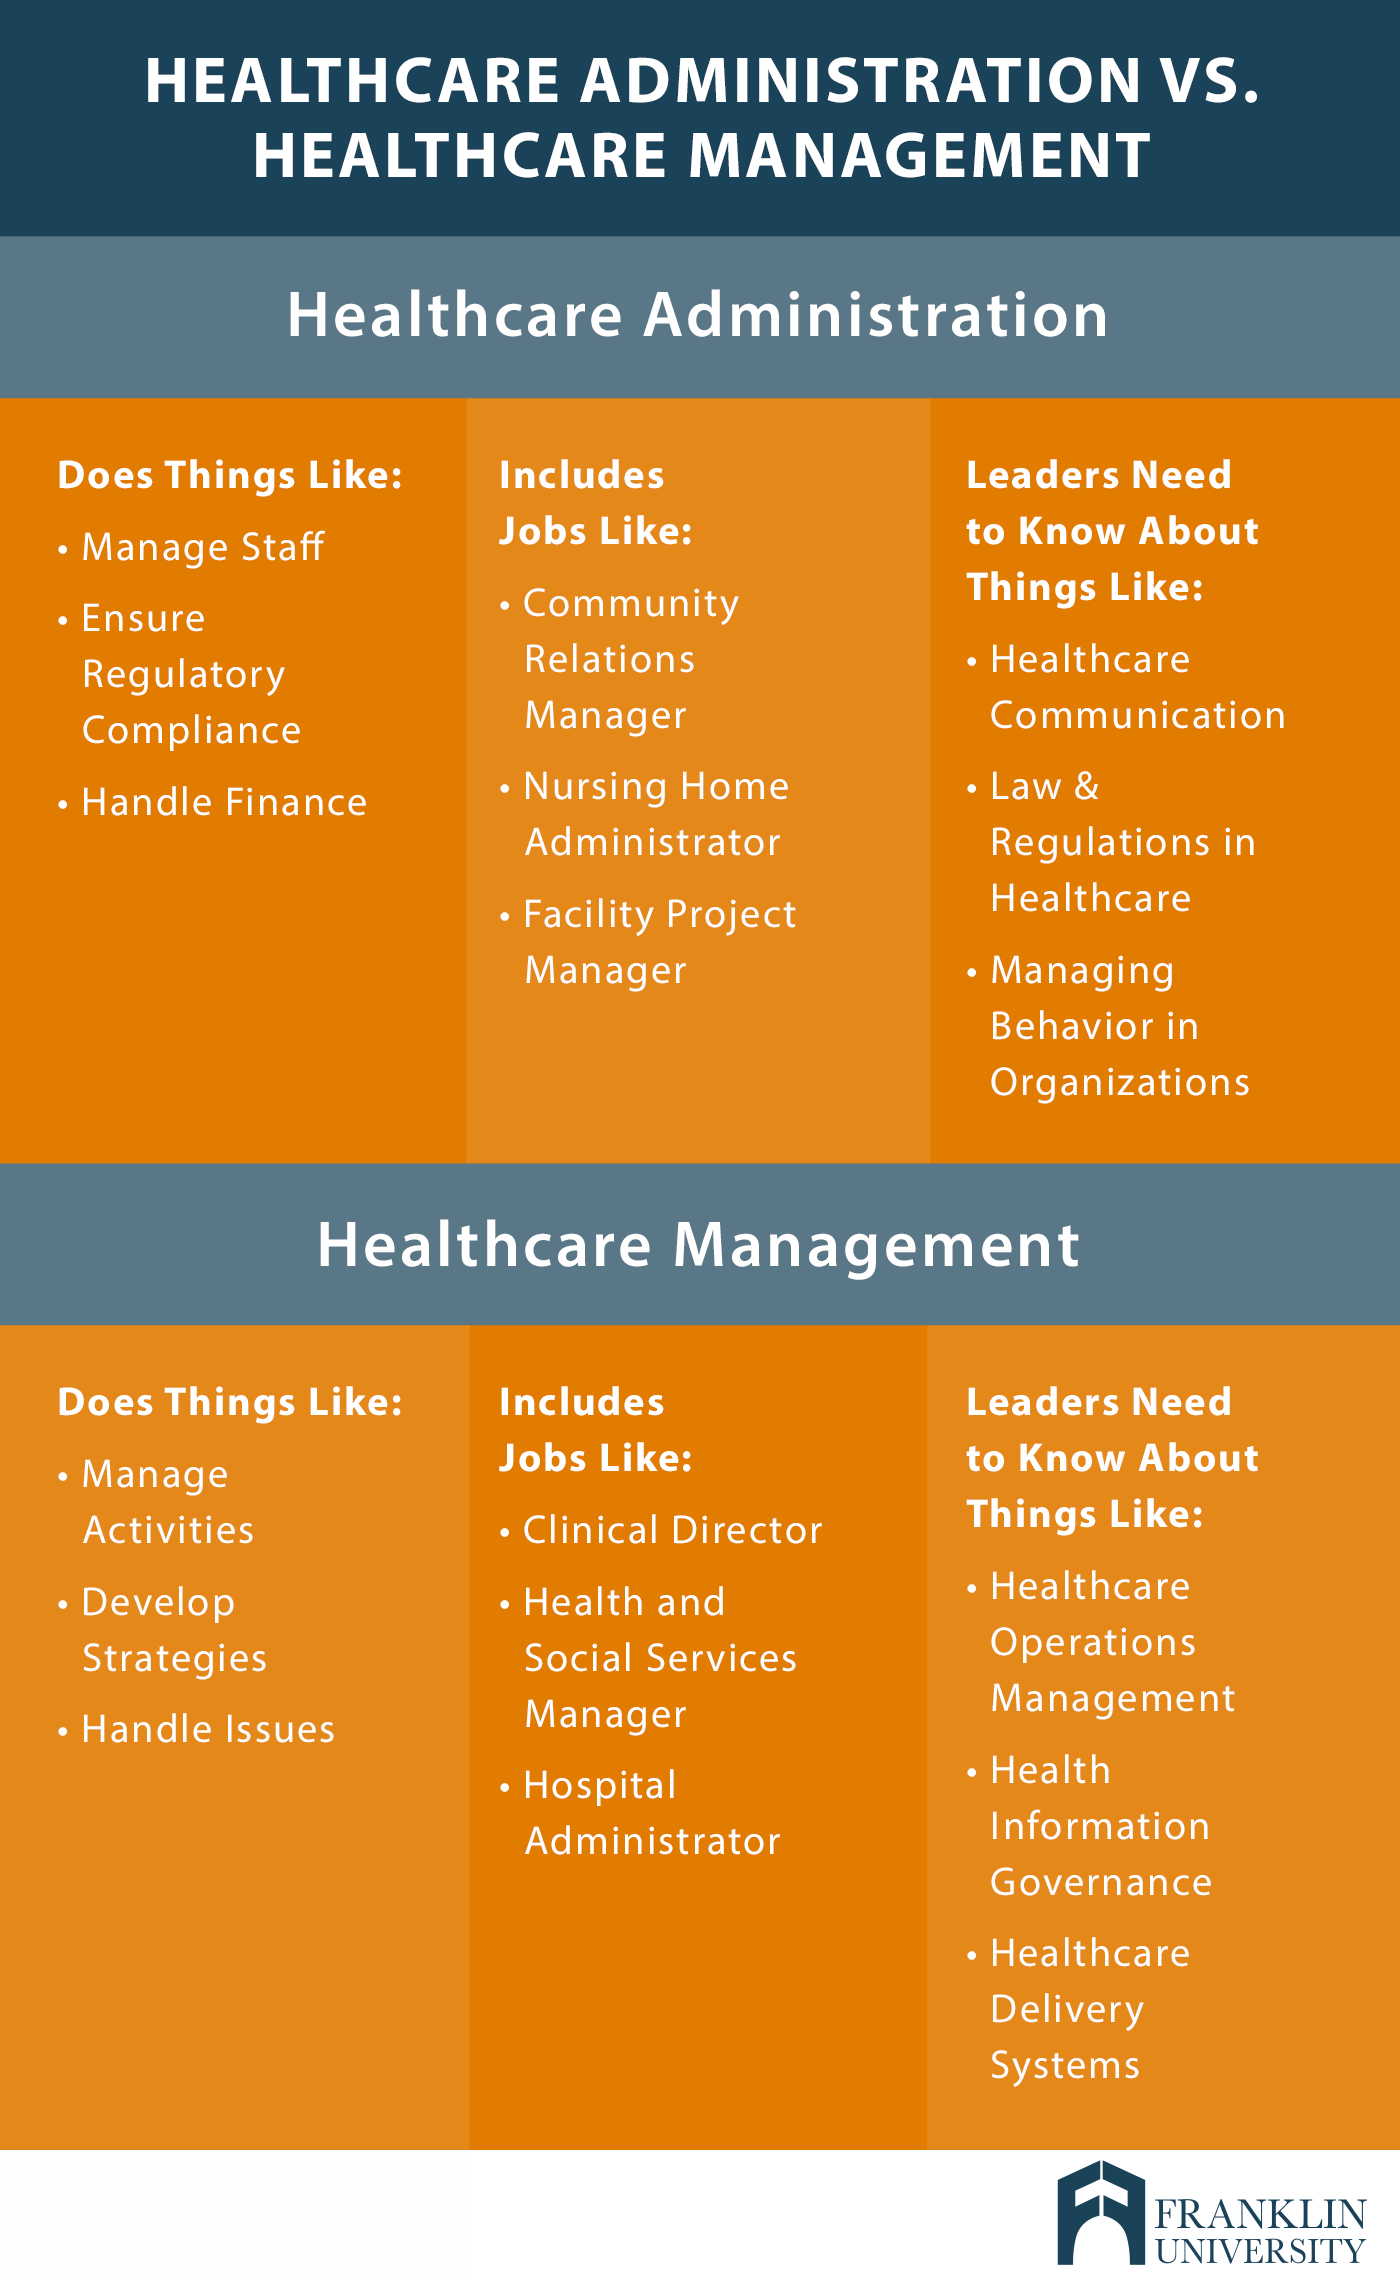 graphic describes healthcare administration versus healthcare management